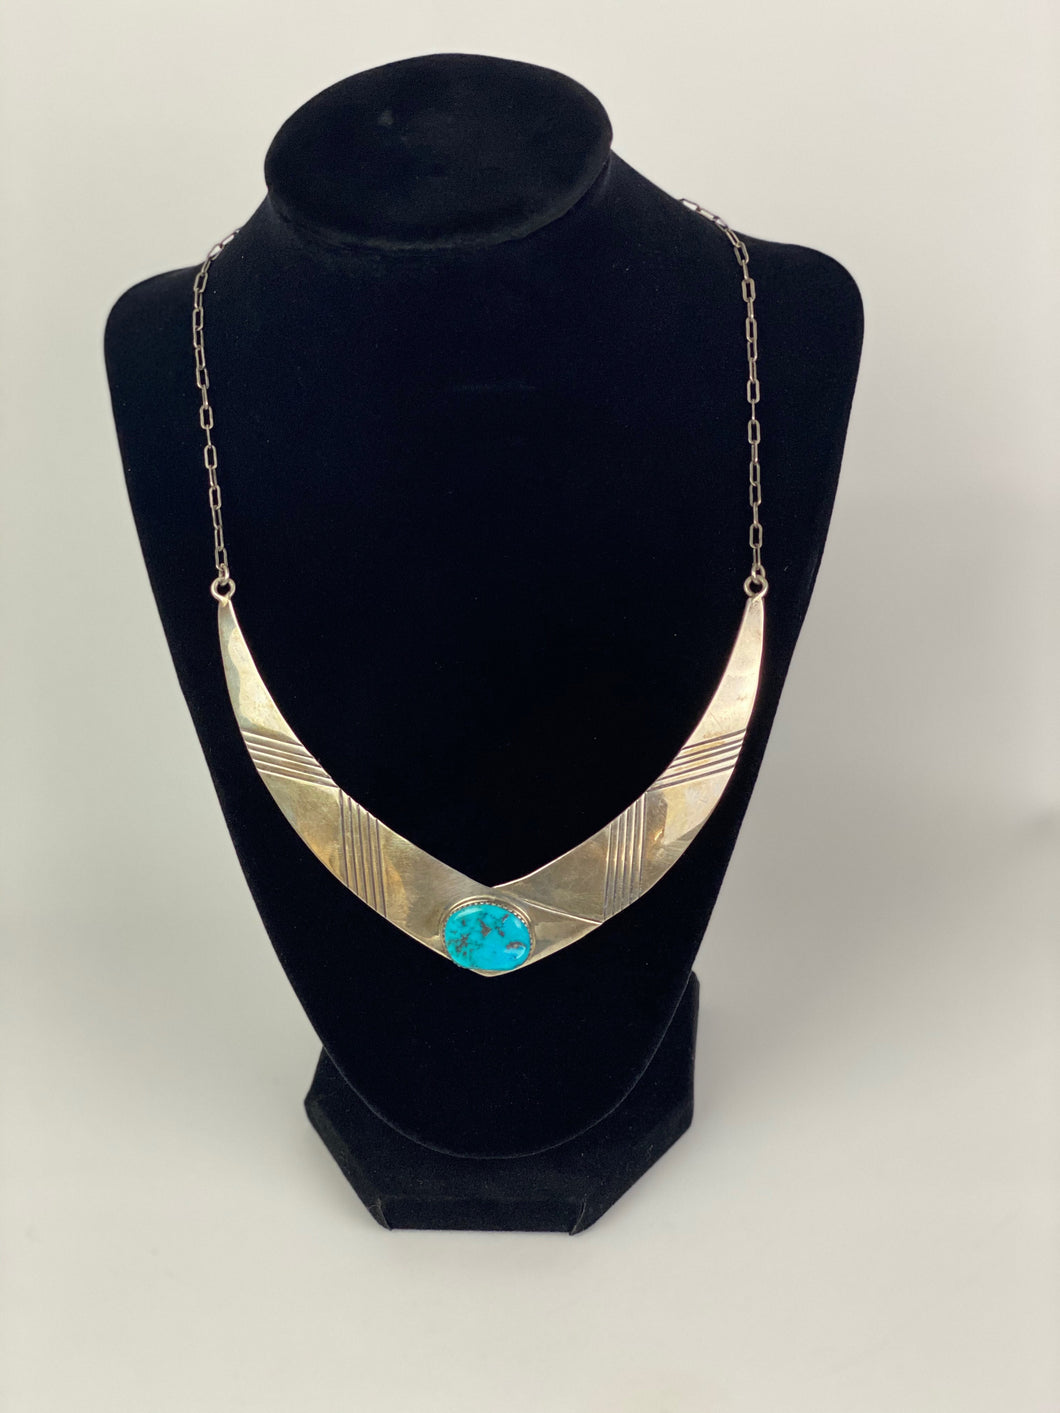 Vintage Bib Turquoise and Sterling Necklace-P2005N